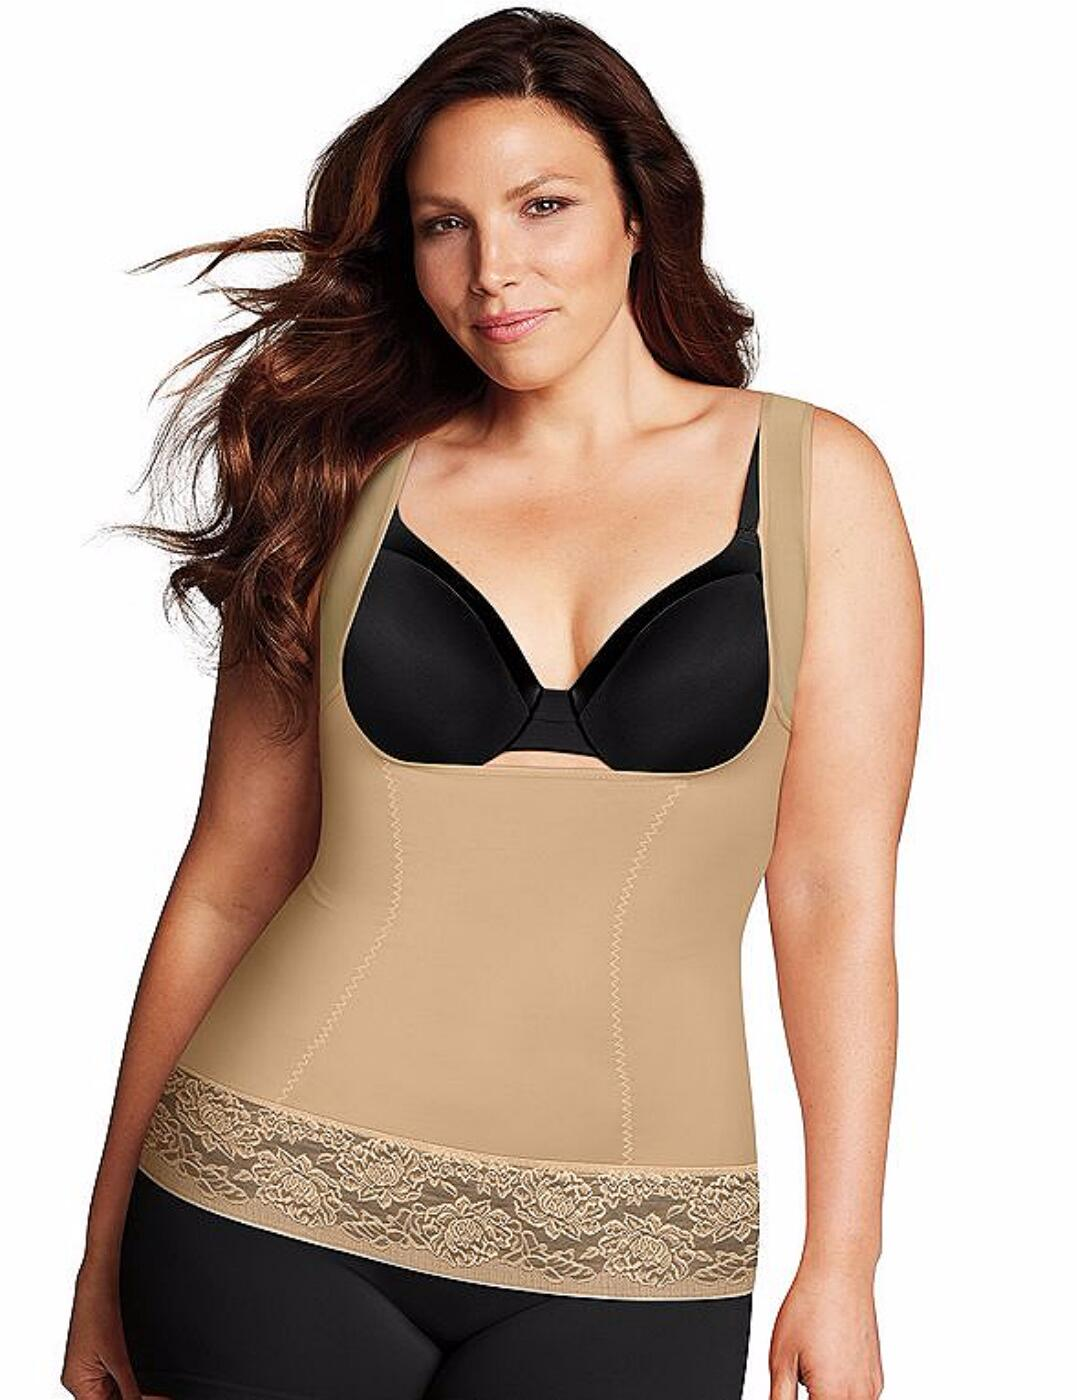 1026 Maidenform Firm Foundations Curvy Shaping Torsette - 1026 Body Beige